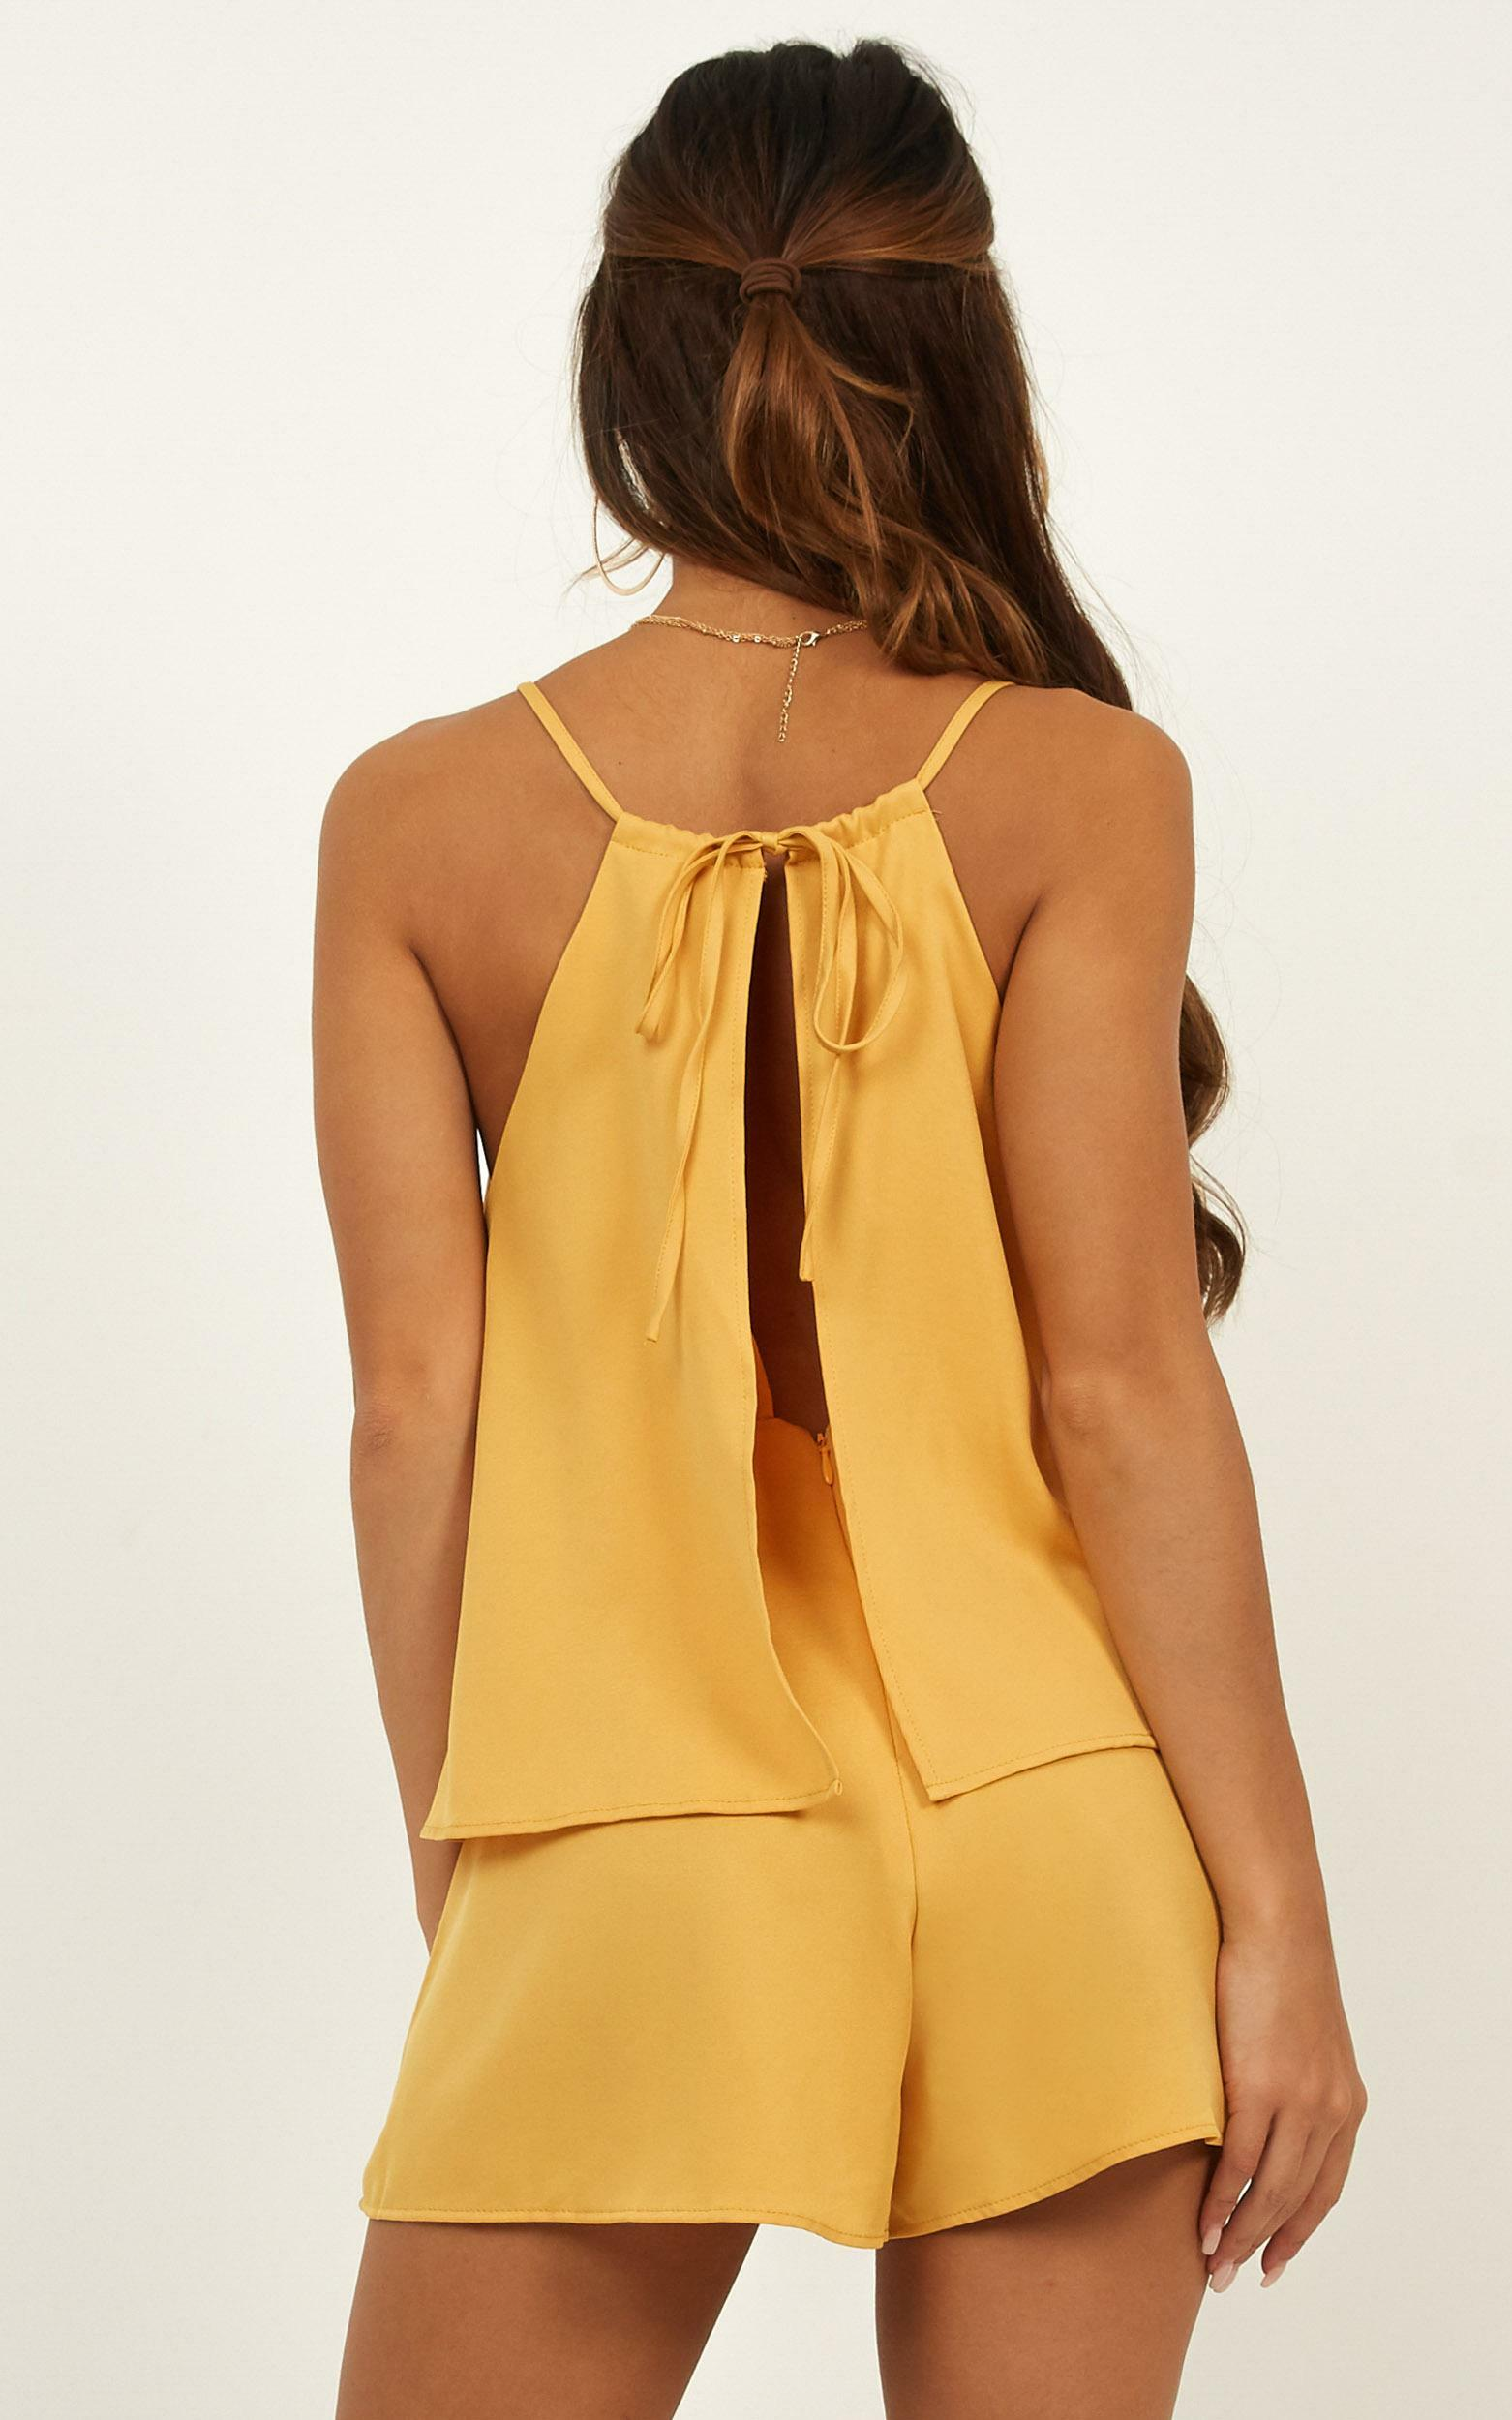 Midway Playsuit in mustard - 20 (XXXXL), Mustard, hi-res image number null